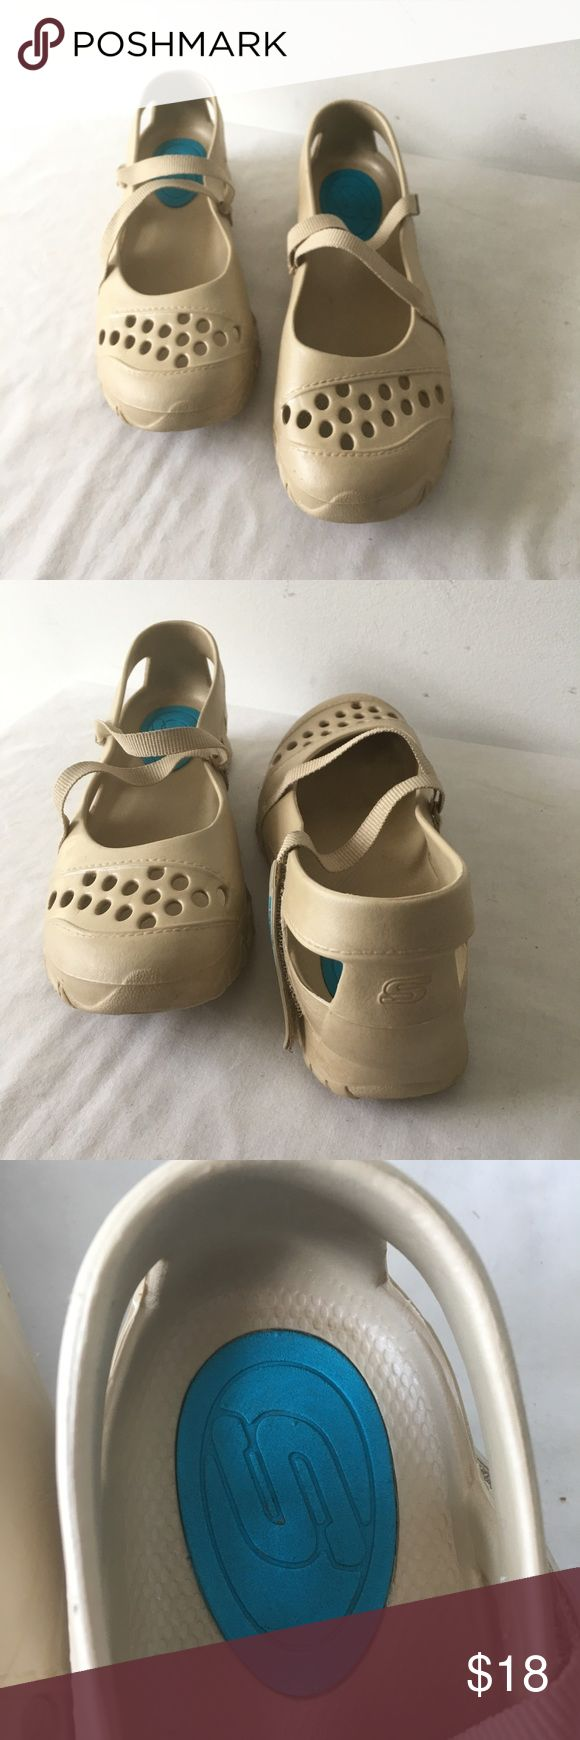 Skechers Mary Jane Good preowned condition A few scuffs and stains. Metallic Tan Skechers Shoes Flats & Loafers